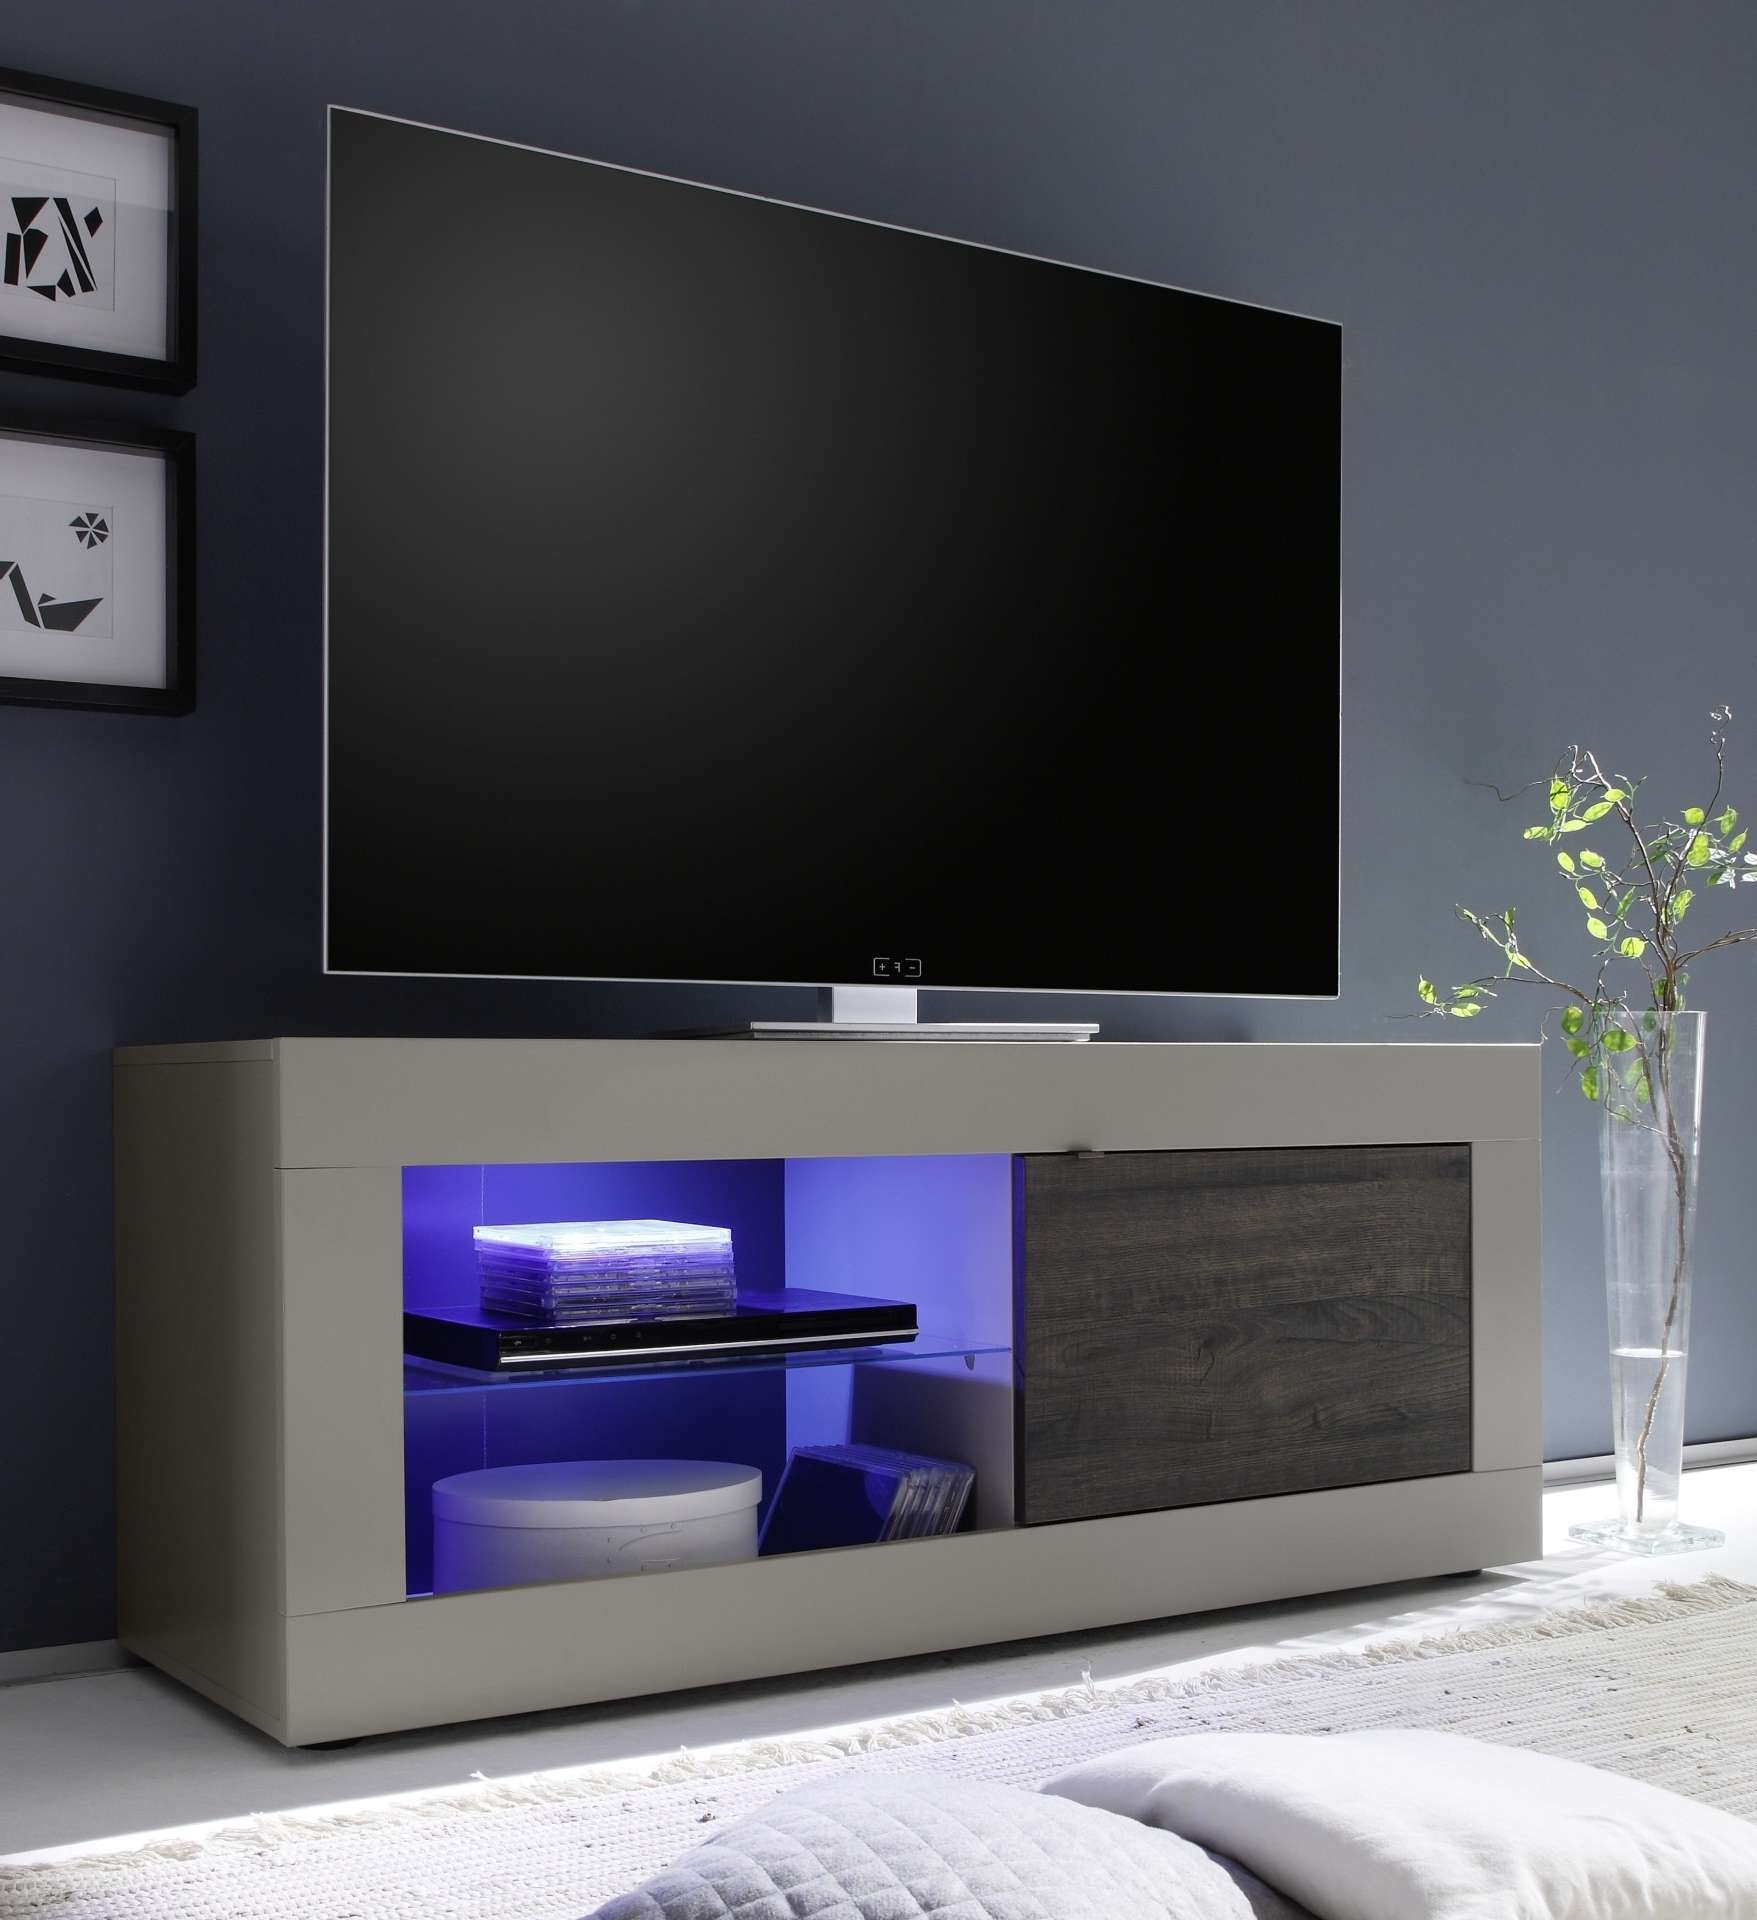 Dolcevita Matt Beige Tv Stand – Tv Stands – Sena Home Furniture For Funky Tv Stands (View 4 of 15)